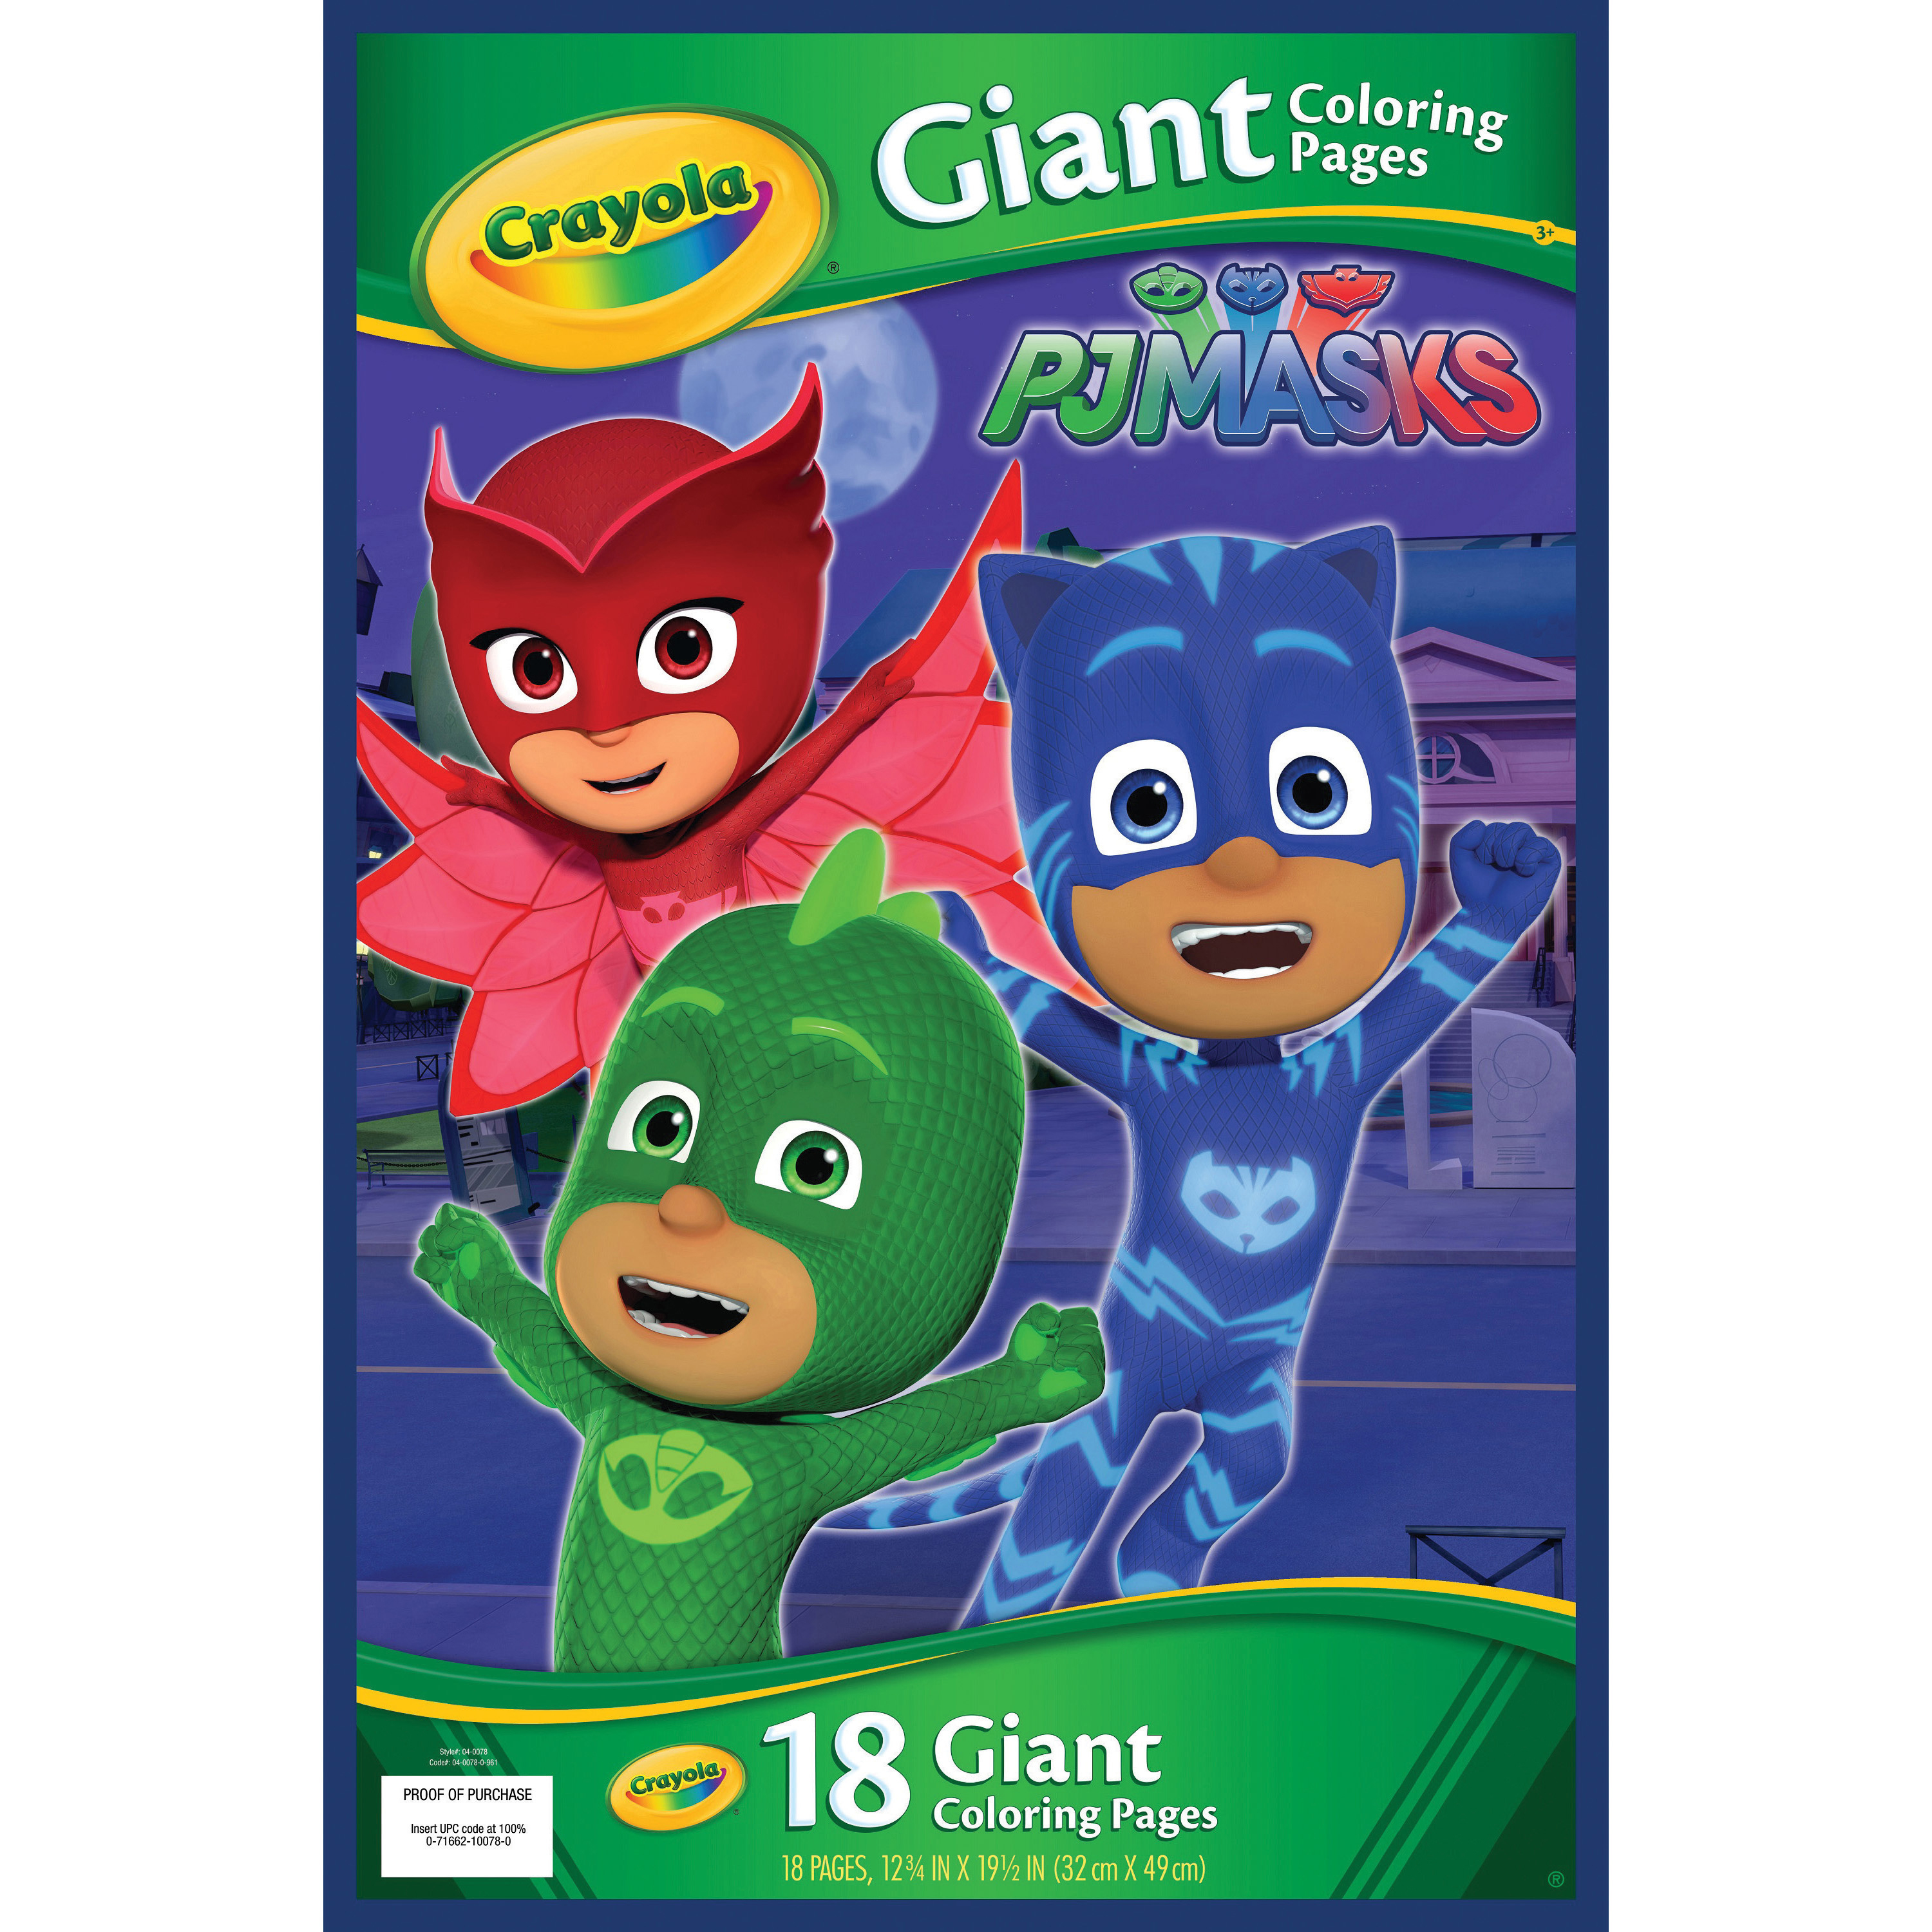 Crayola Giant Coloring Pages Crayola Pj Masks Giant Coloring Pages Brooker Business Products